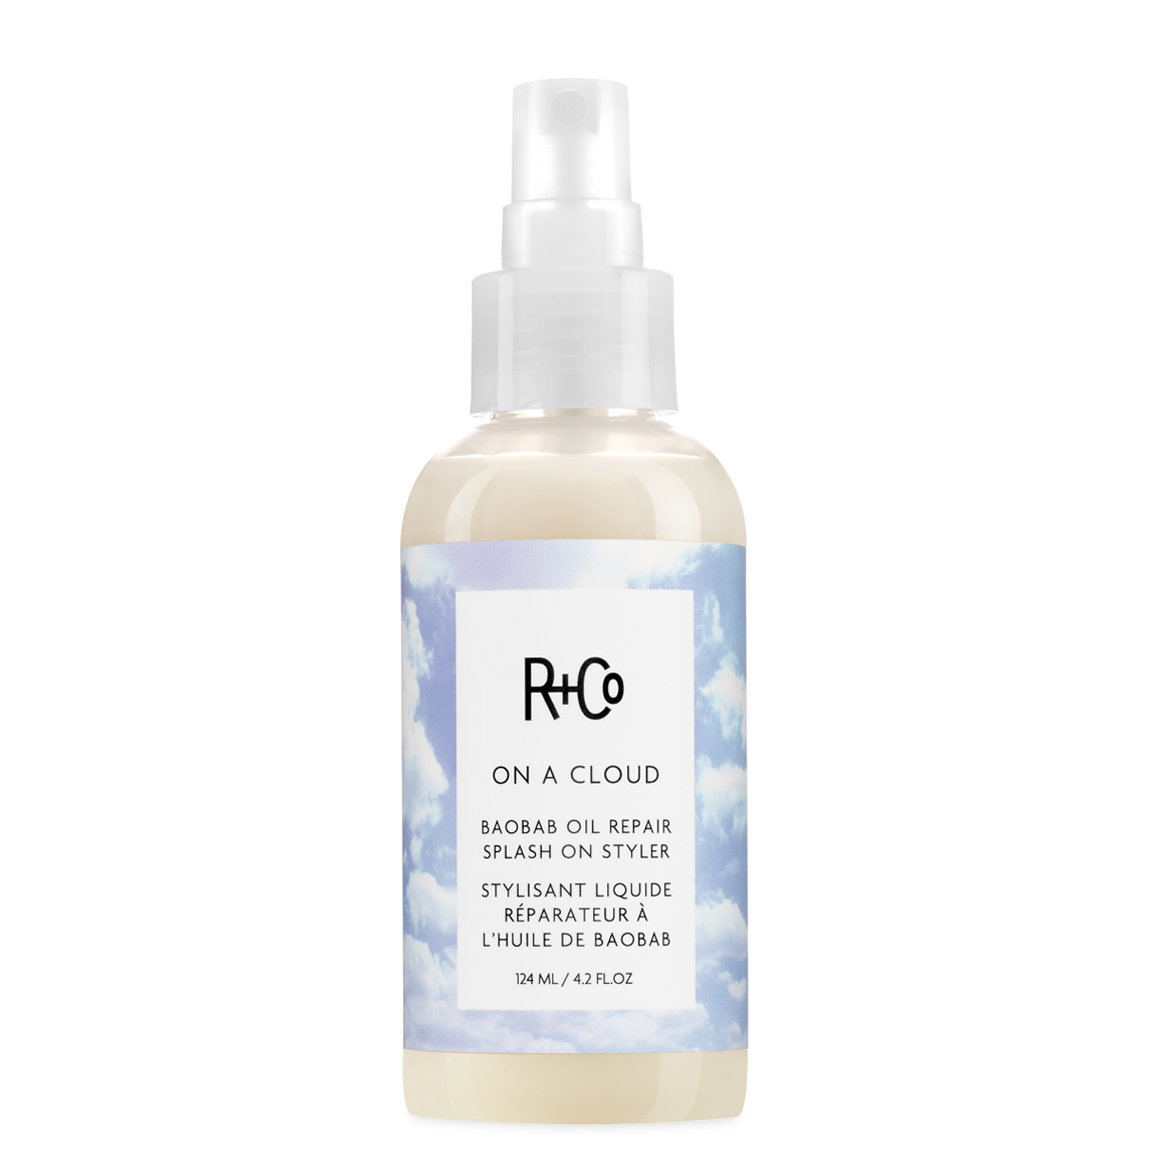 R+Co On A Cloud Baobob Oil Repair Splash-On Styler alternative view 1 - product swatch.